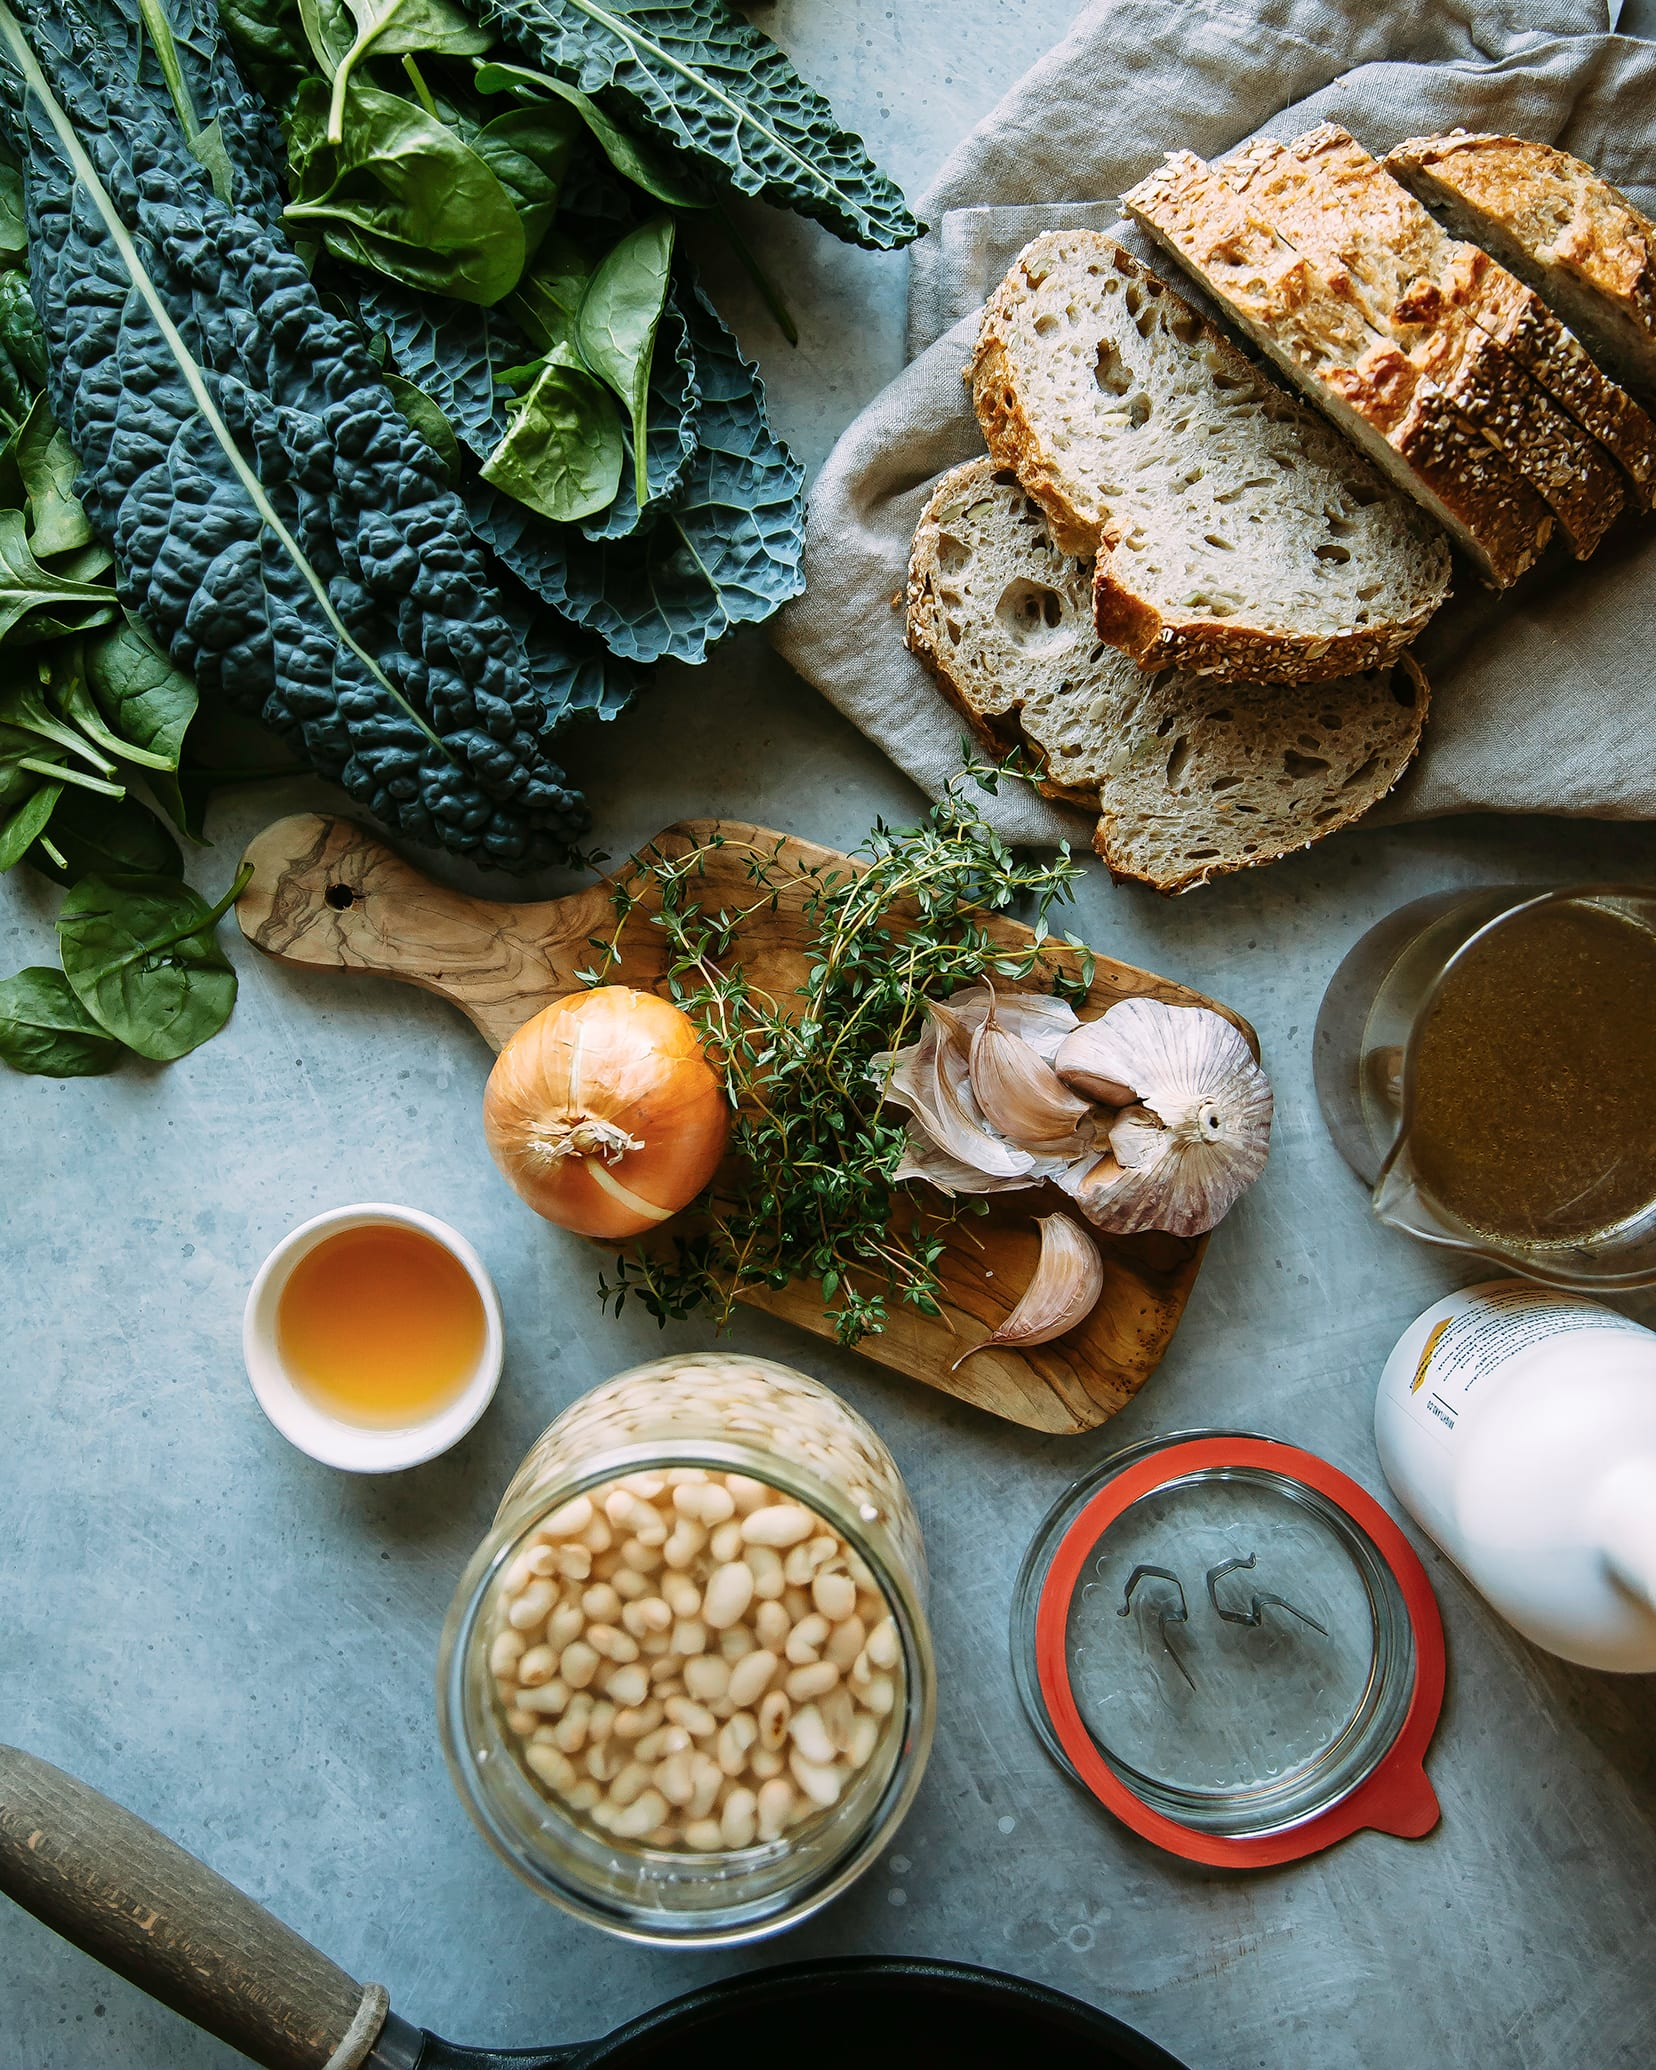 An overhead shot of ingredients for creamy white beans with greens plus some sliced bread.